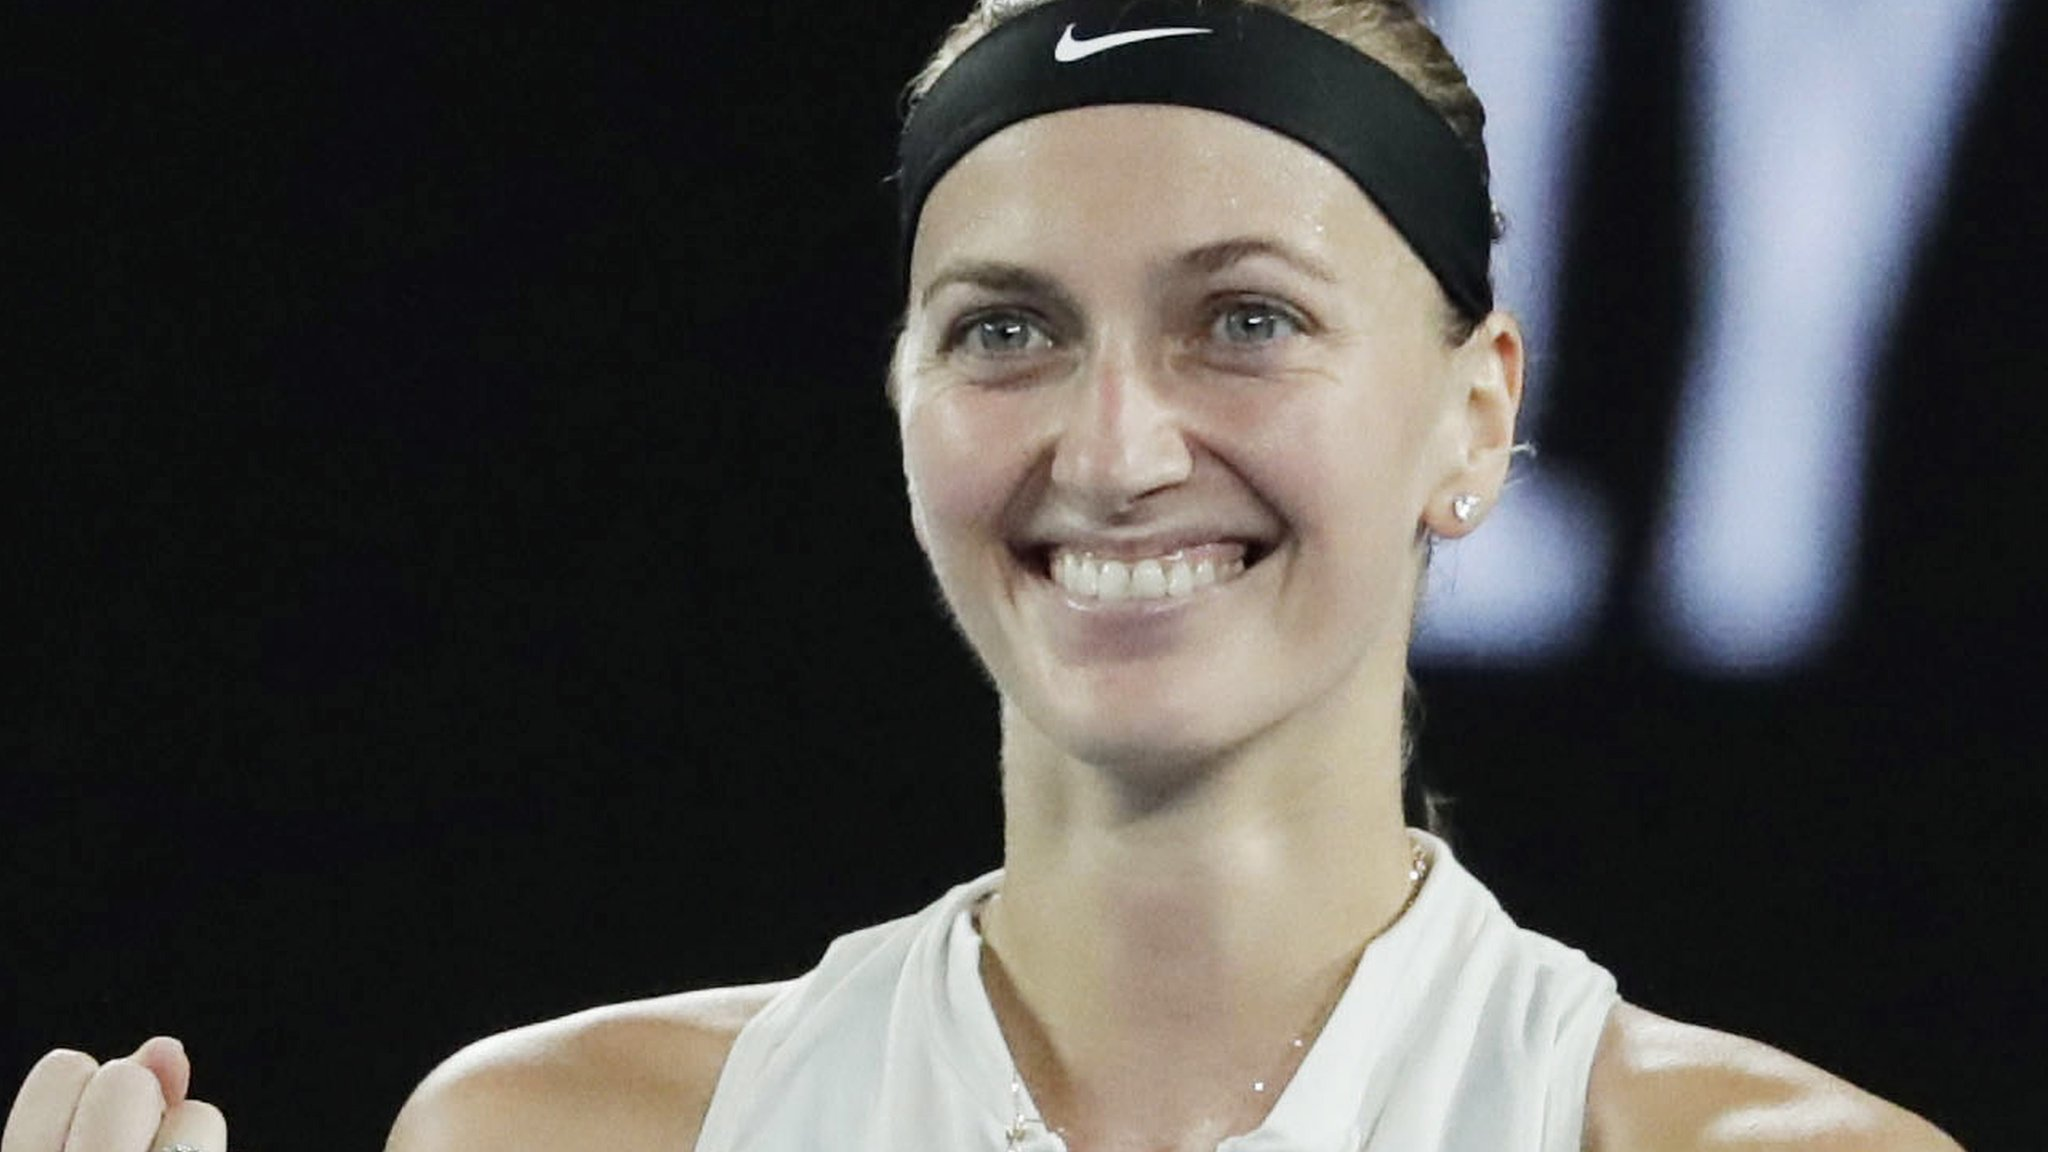 Australian Open 2019: Petra Kvitova beats Danielle Collins to reach final